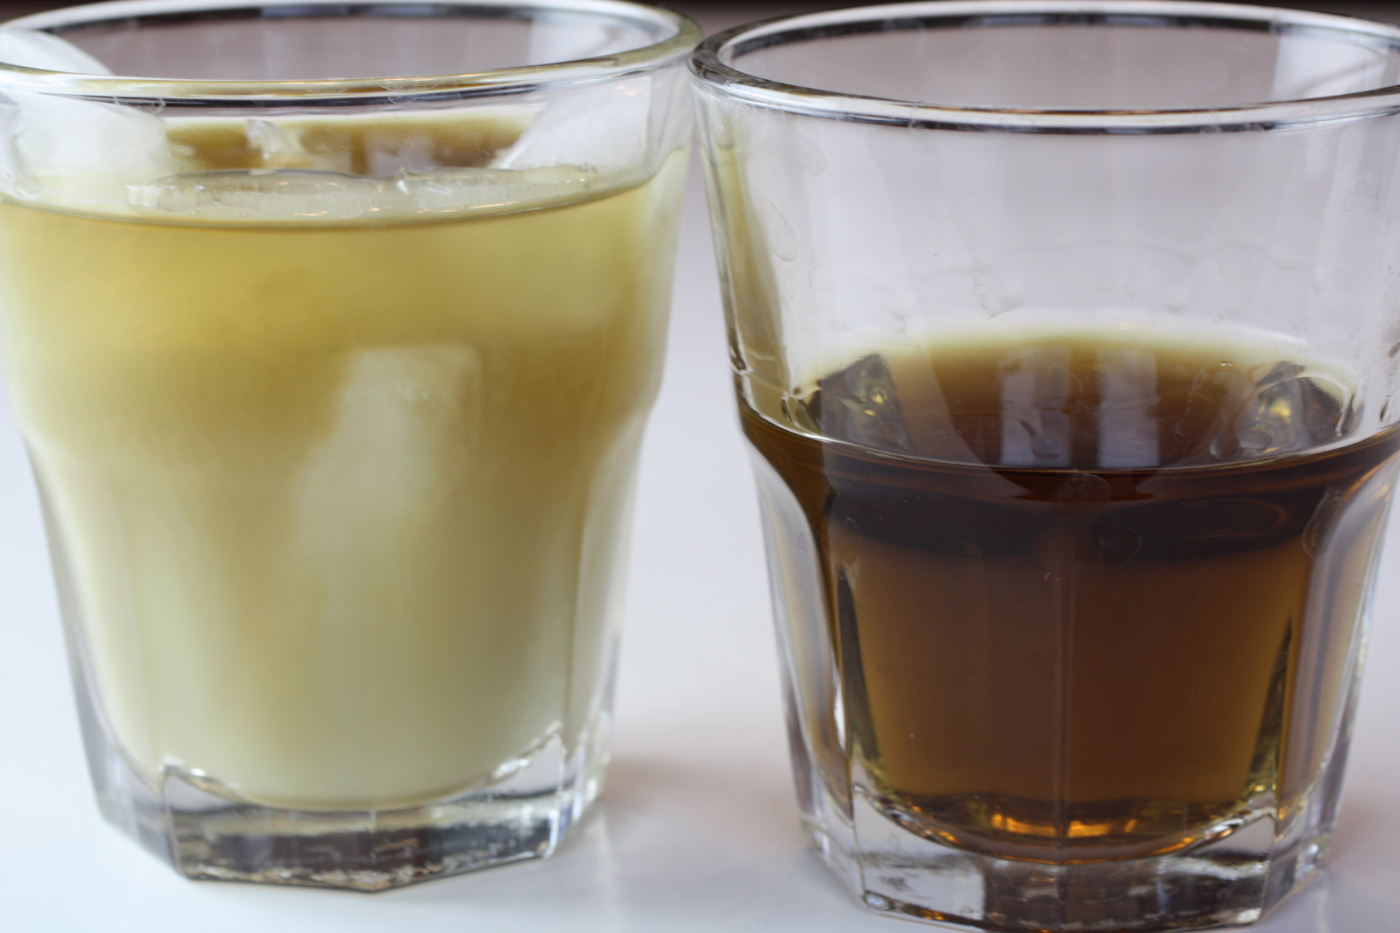 The Green Fairy: Diluted with ice (left), and straight (right).